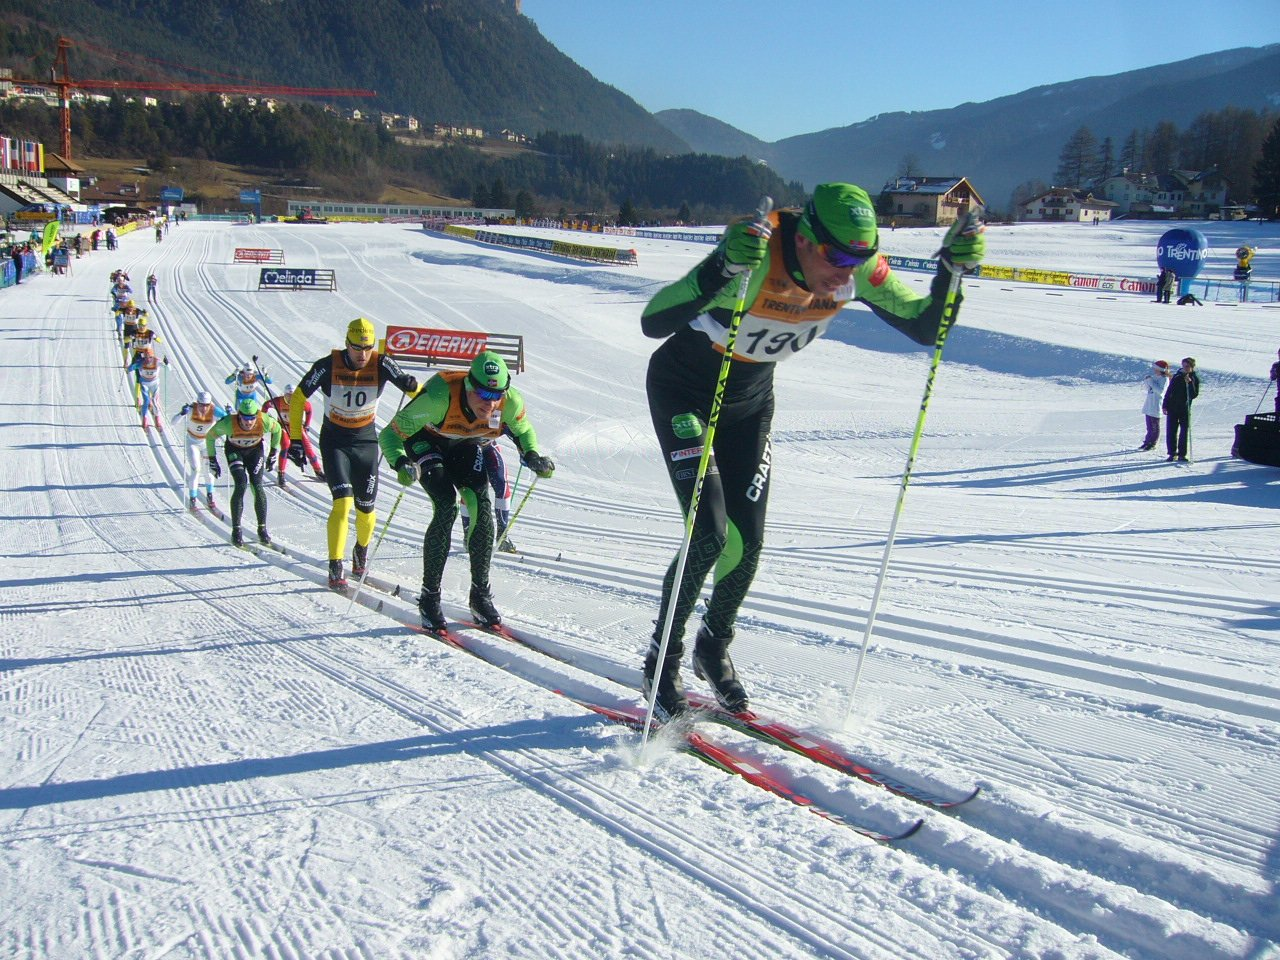 Marcialonga_2011_at_Lago_di_Tesero_Cross-Country_Ski_Stadium_02